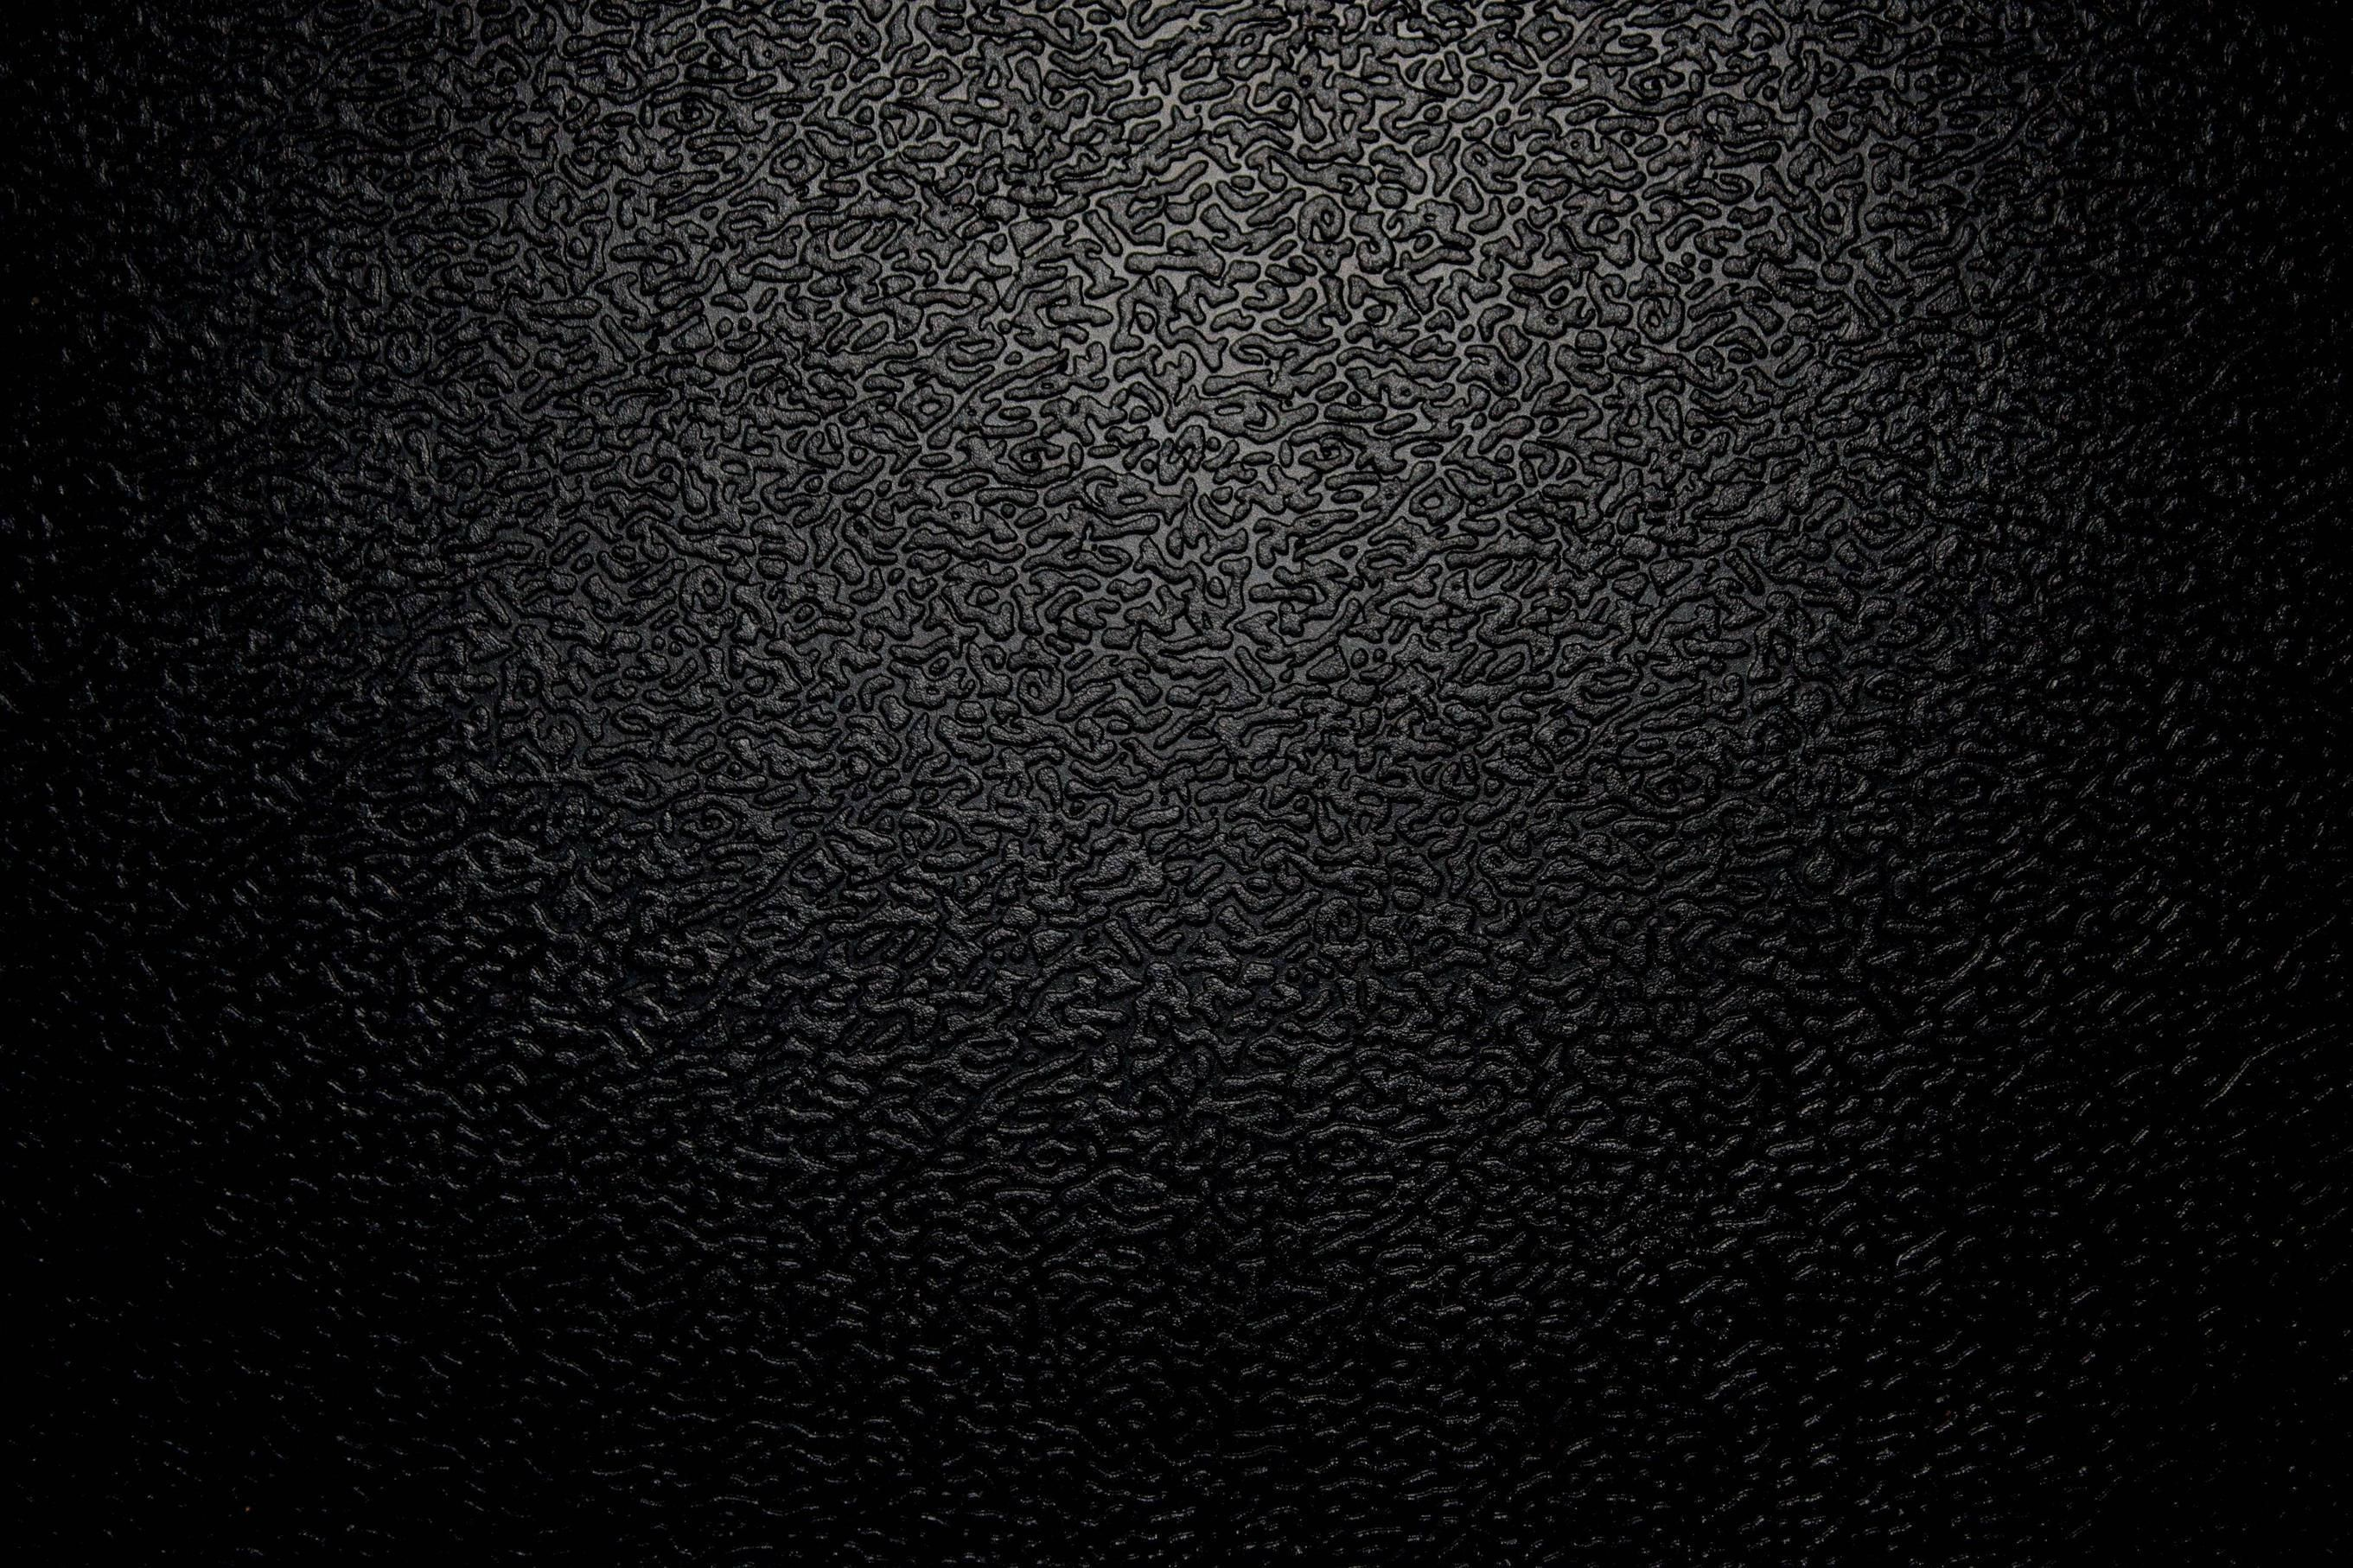 Black And White Textured Wallpaper 8 Hd Free